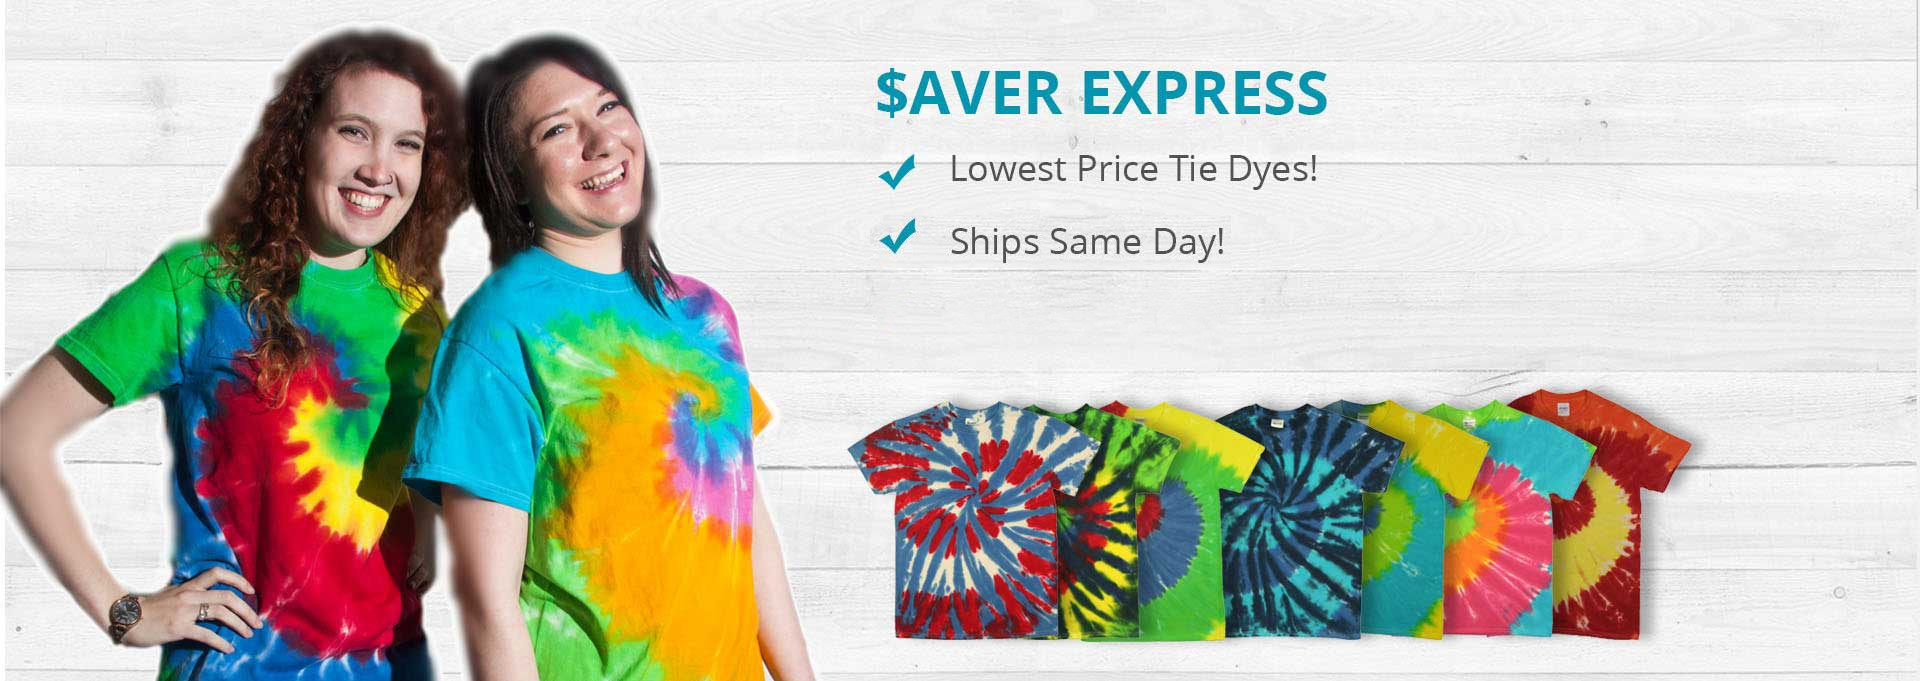 Saver Express on Tie Dye Wholesaler